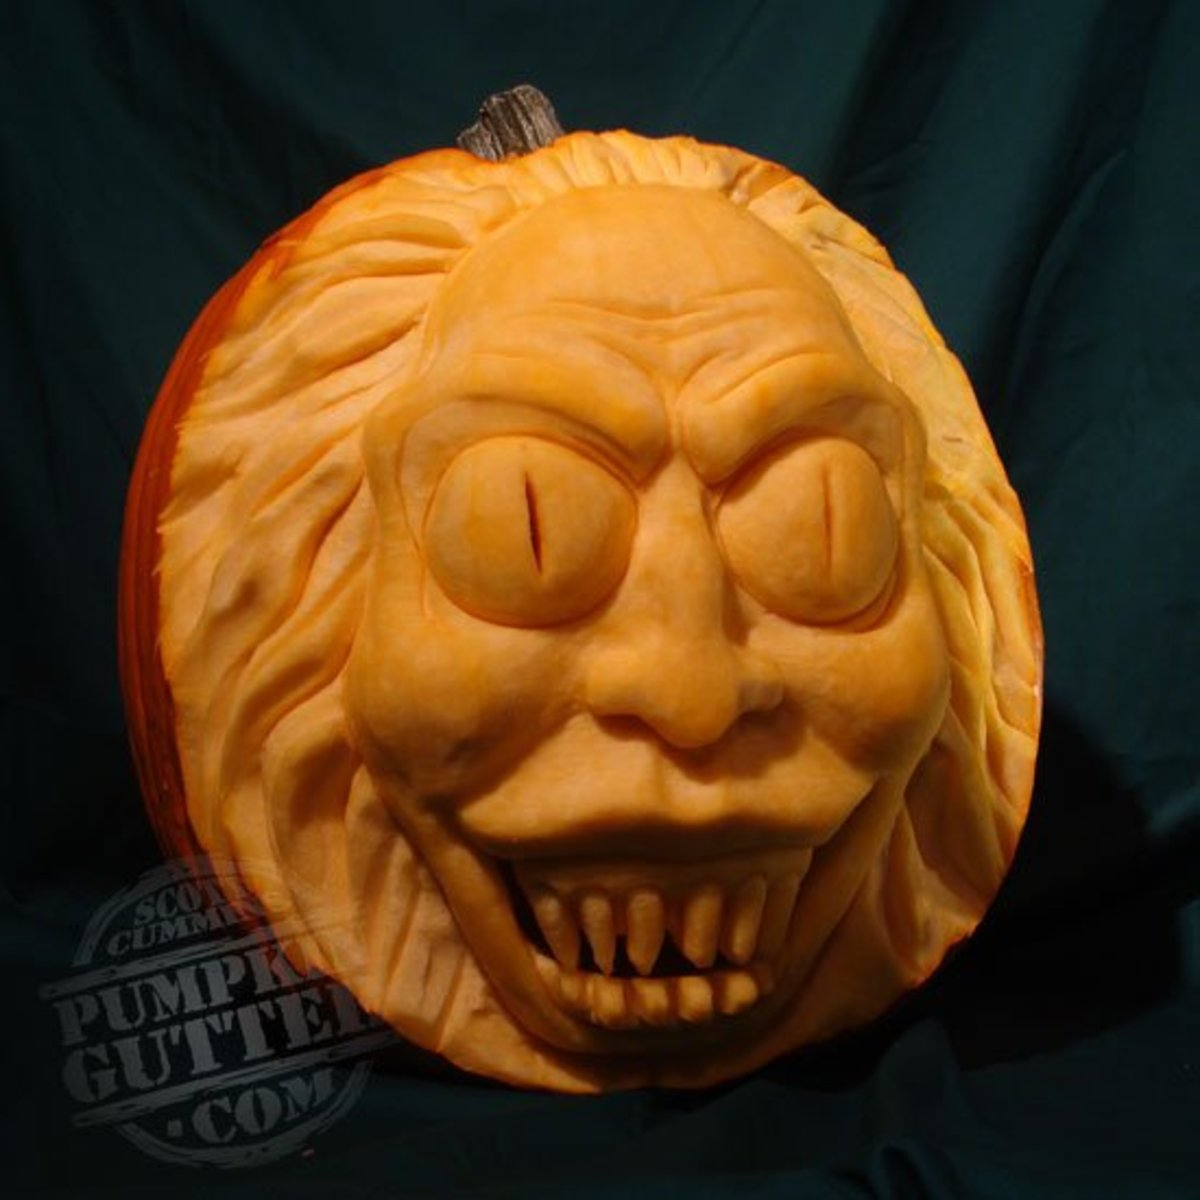 Photos of Amazing, Unique Pumpkin Carving Designs